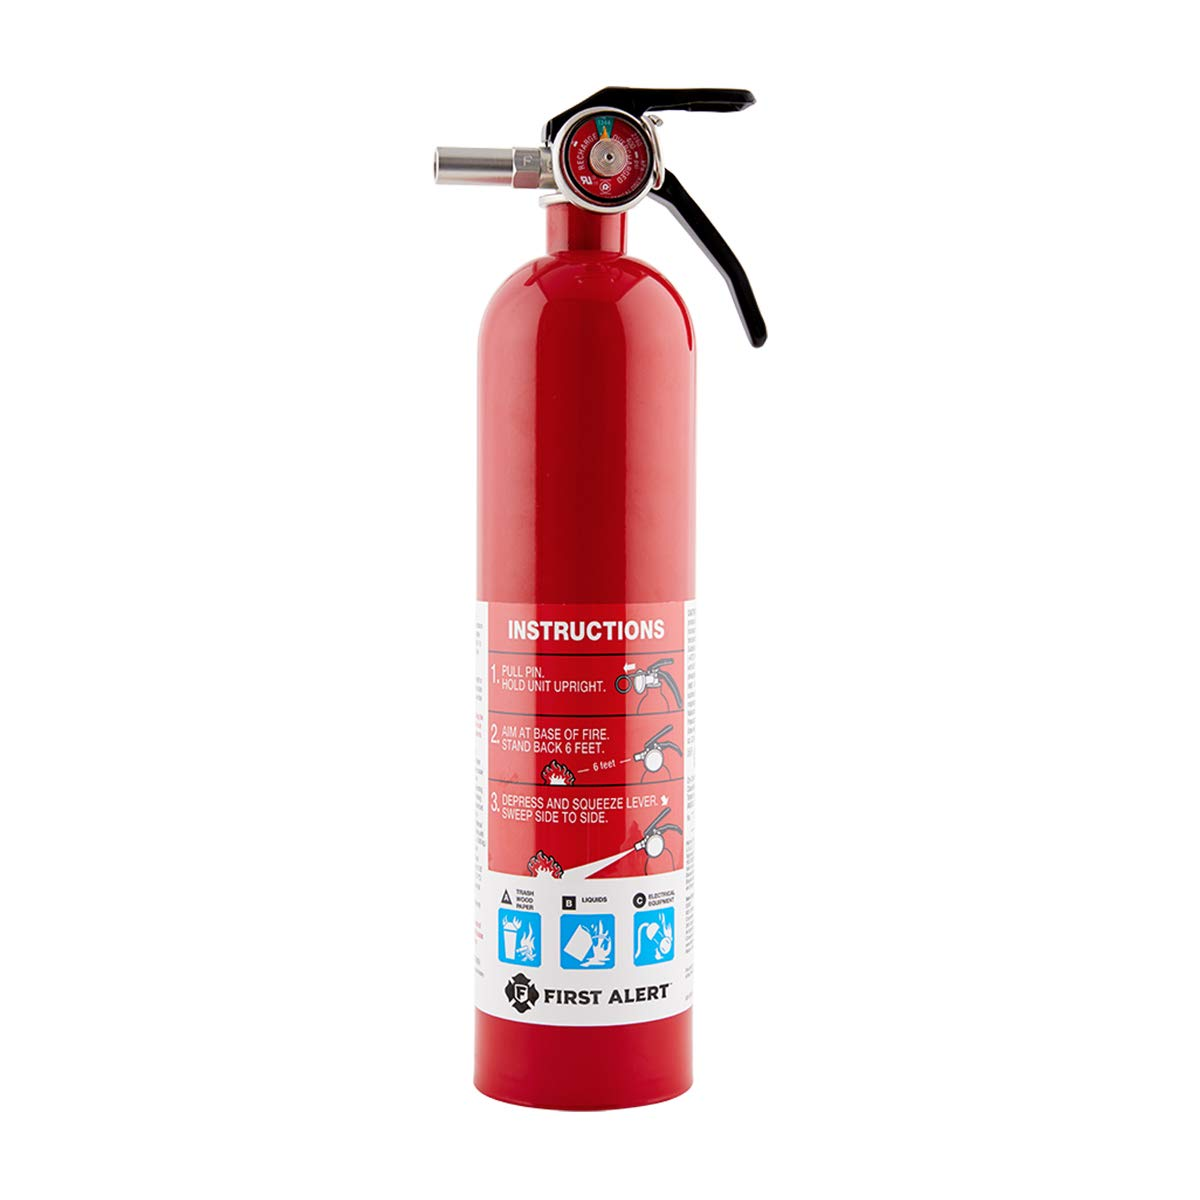 First Alert 1038789 Standard Home Fire Extinguisher Red